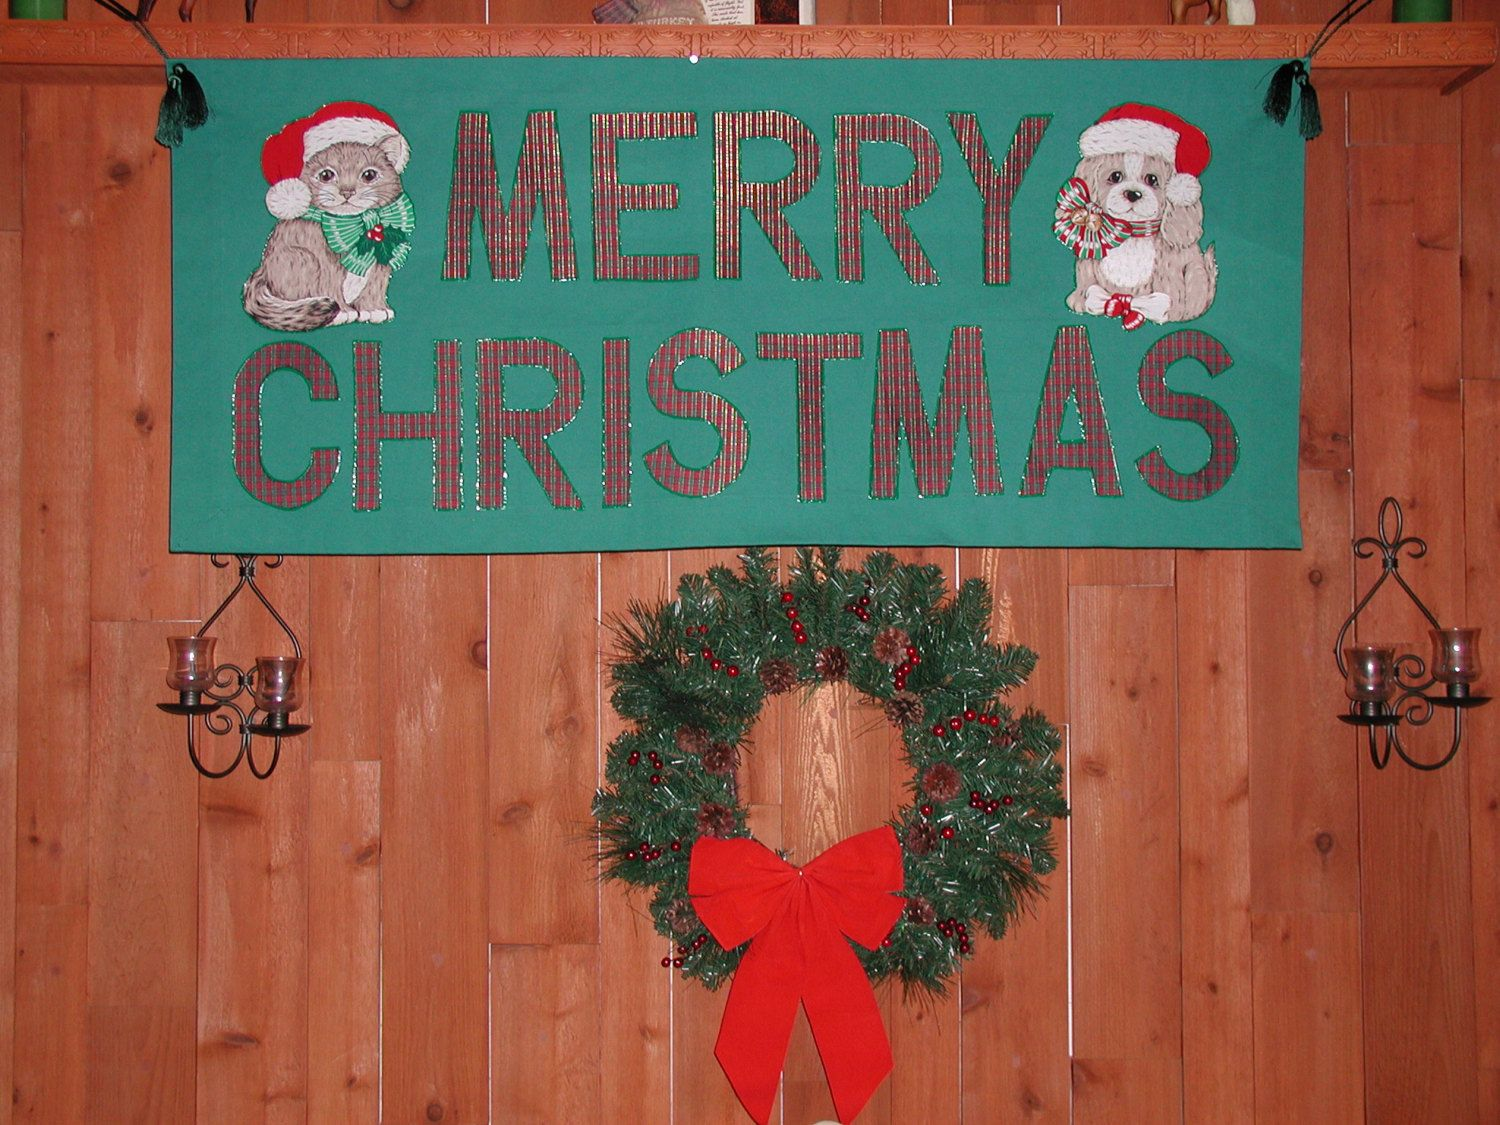 merry christmas new year banner for veterinary office or animal hospital animal rescue and adoption services made of clothe big letters by rrdesigns561 on